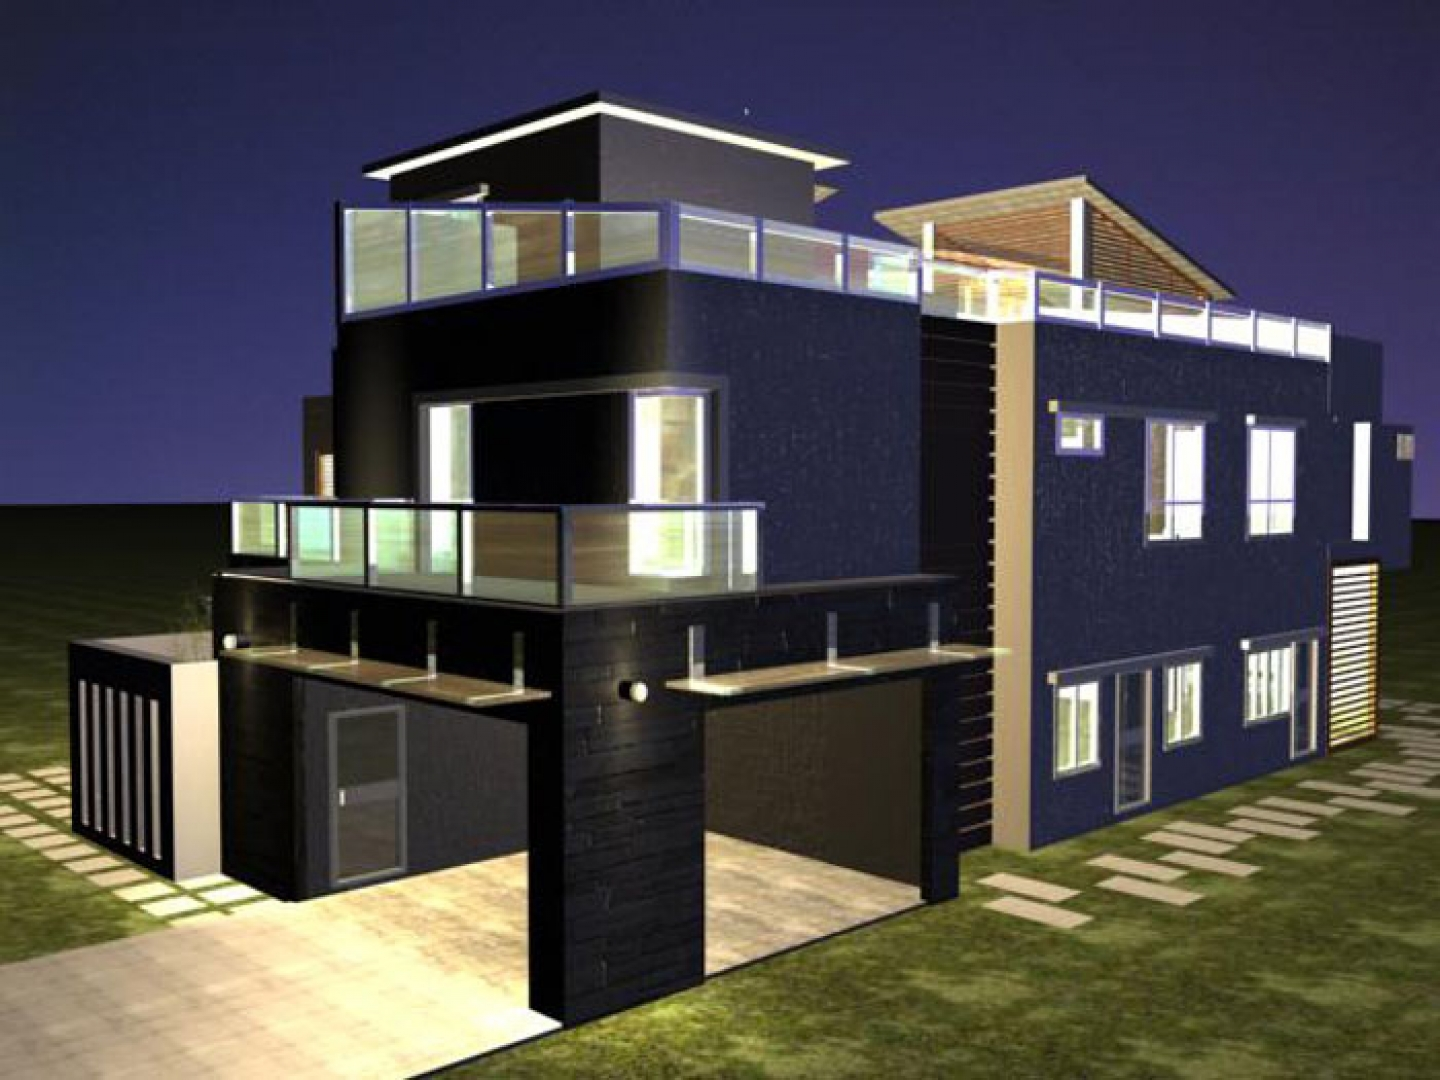 Drawn house modern architectural design Drawing Modern Modern Designs House